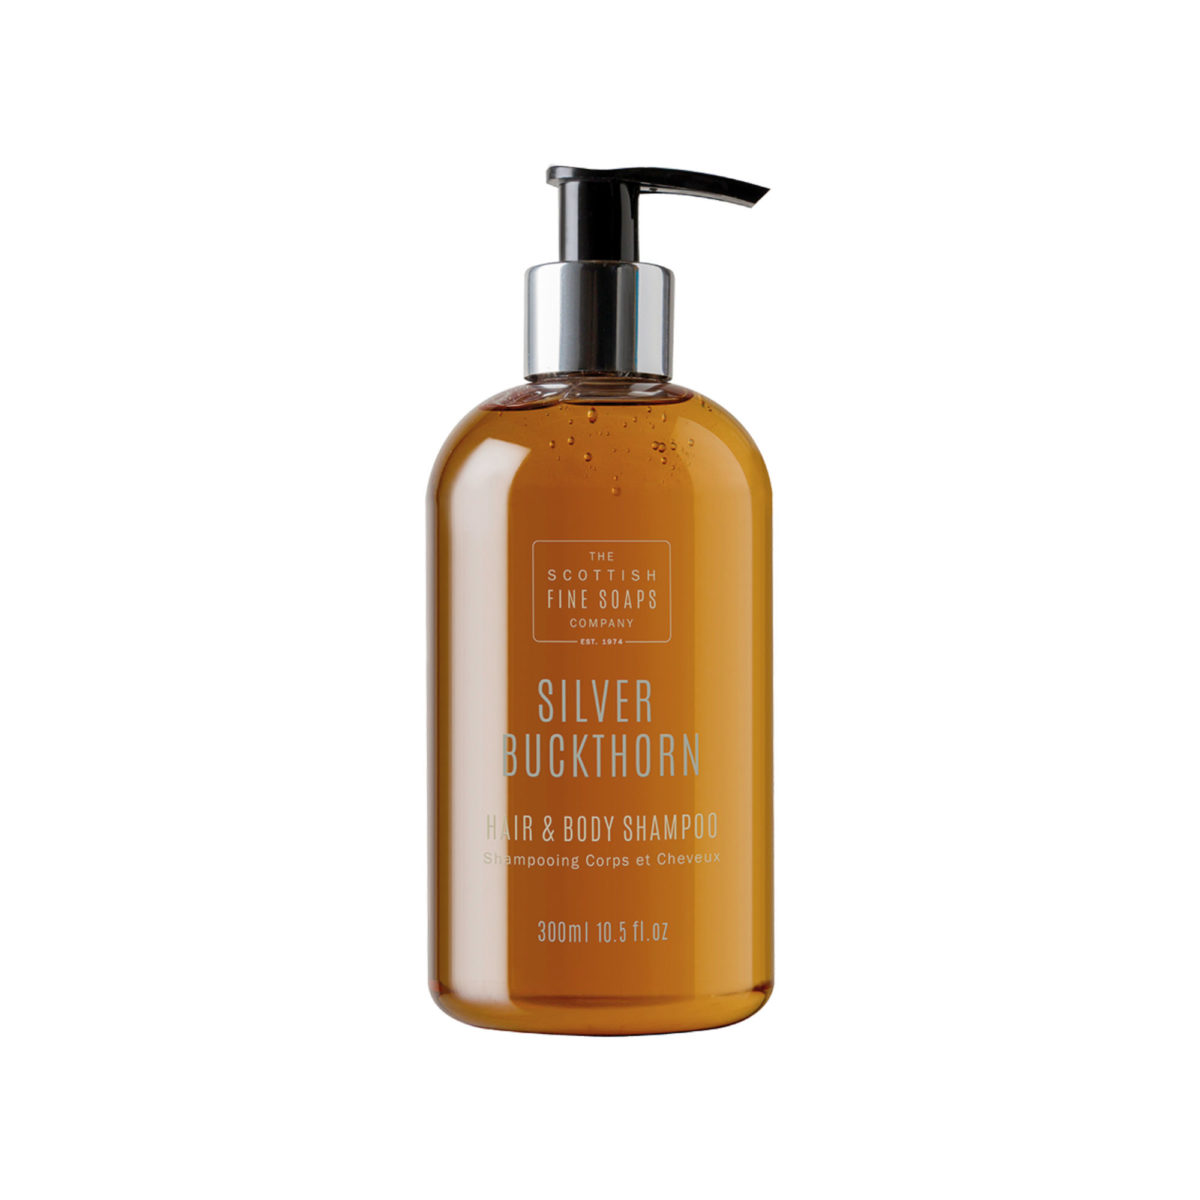 Silver Buckthorn Hair & Body Shampoo